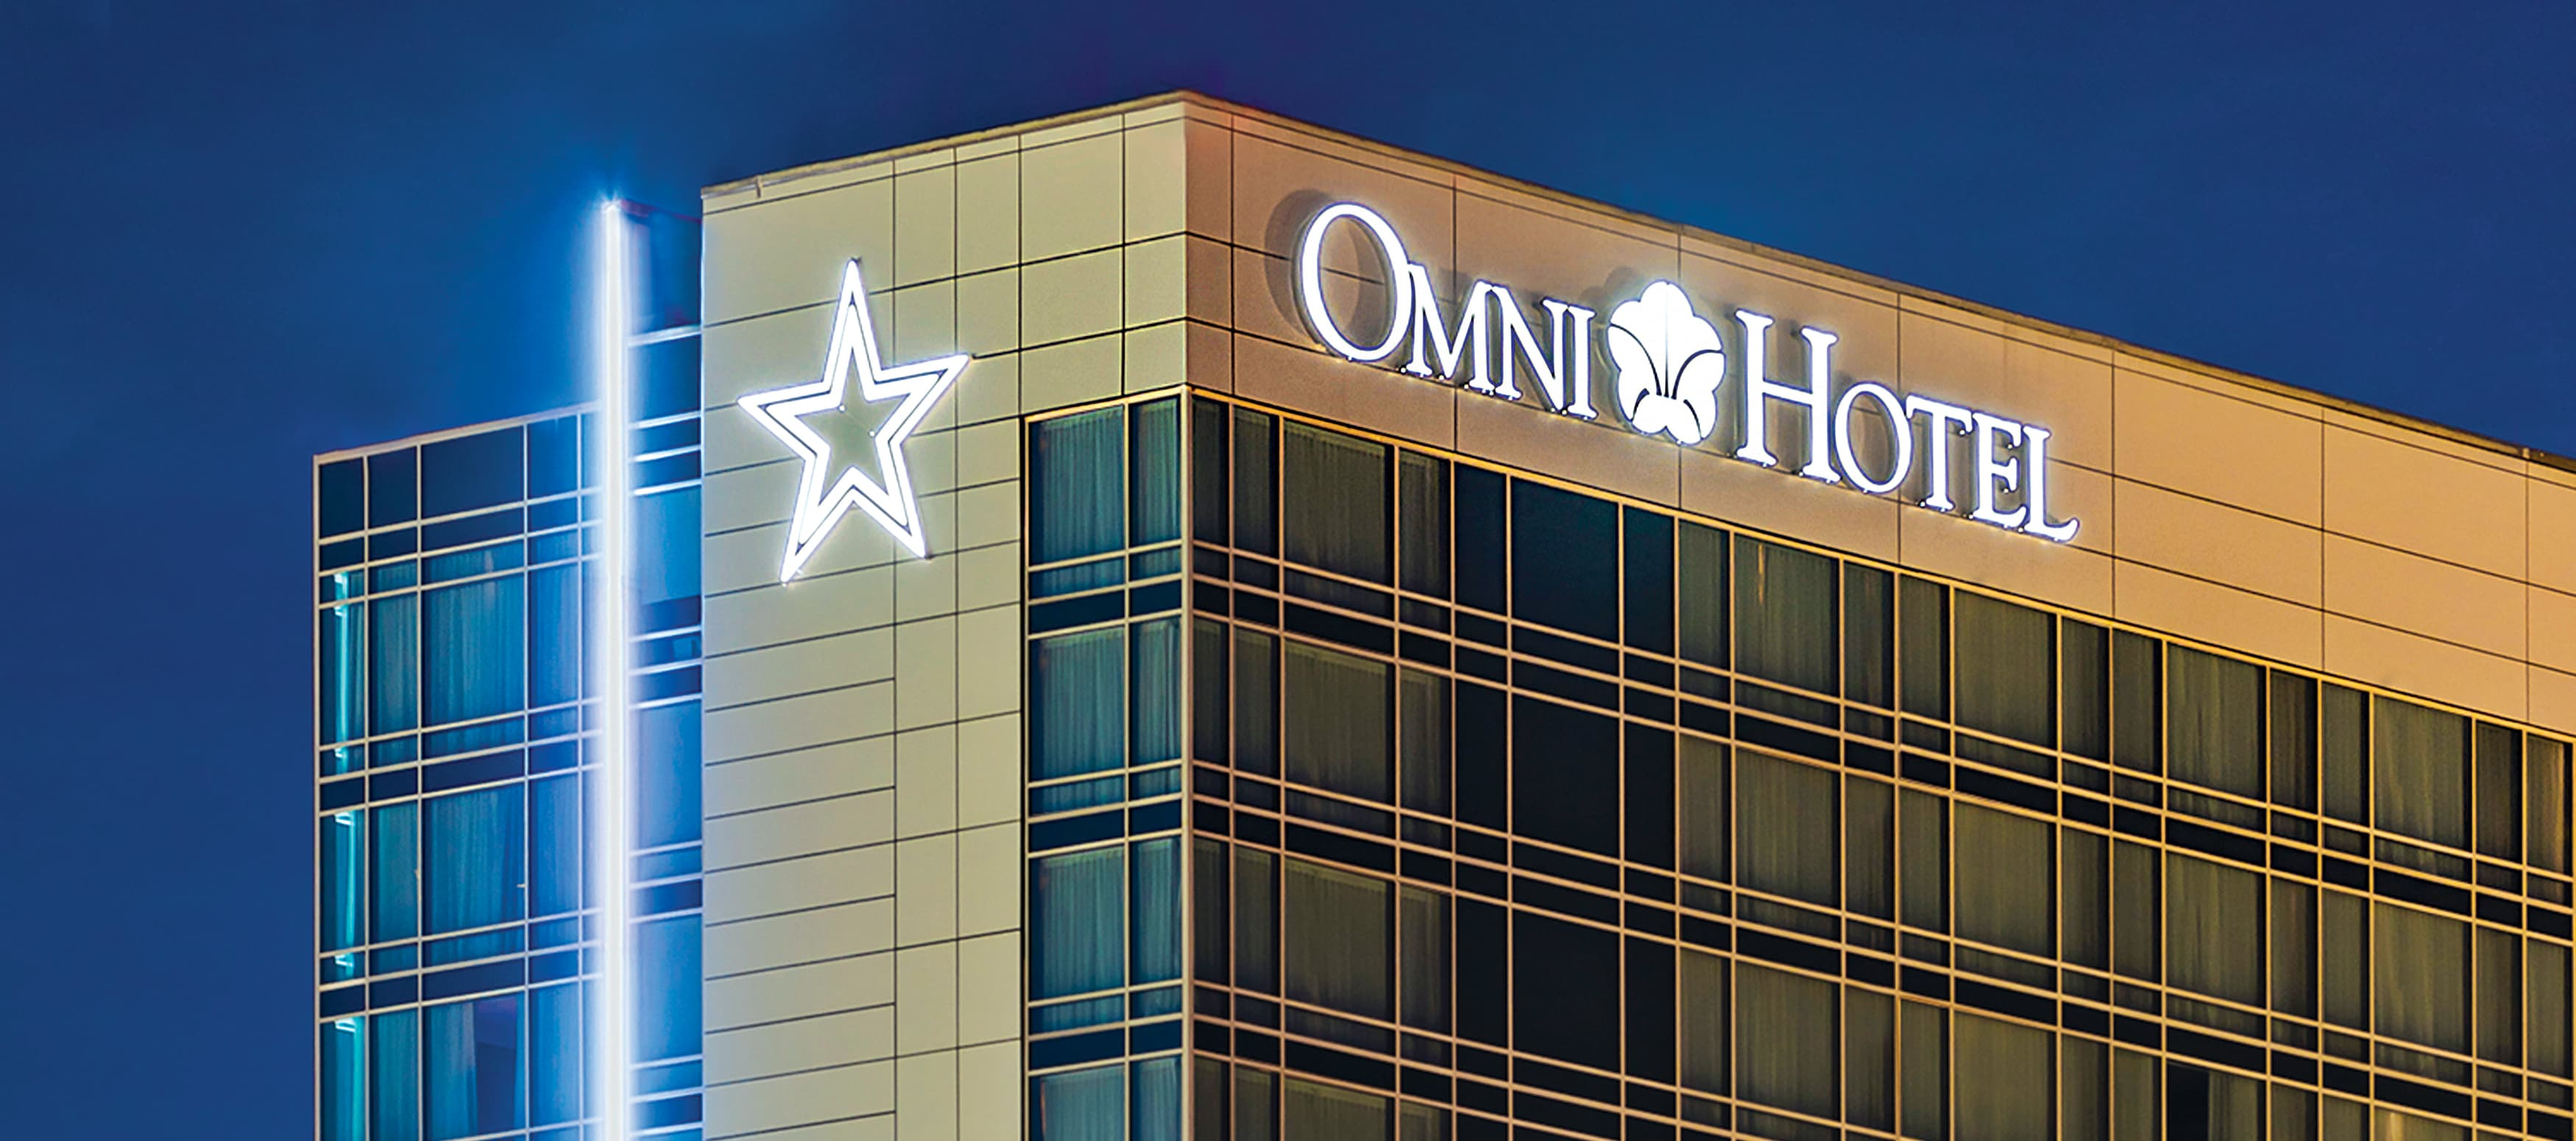 Illuminated hotel sign at dusk for Omni Hotel near Dallas.